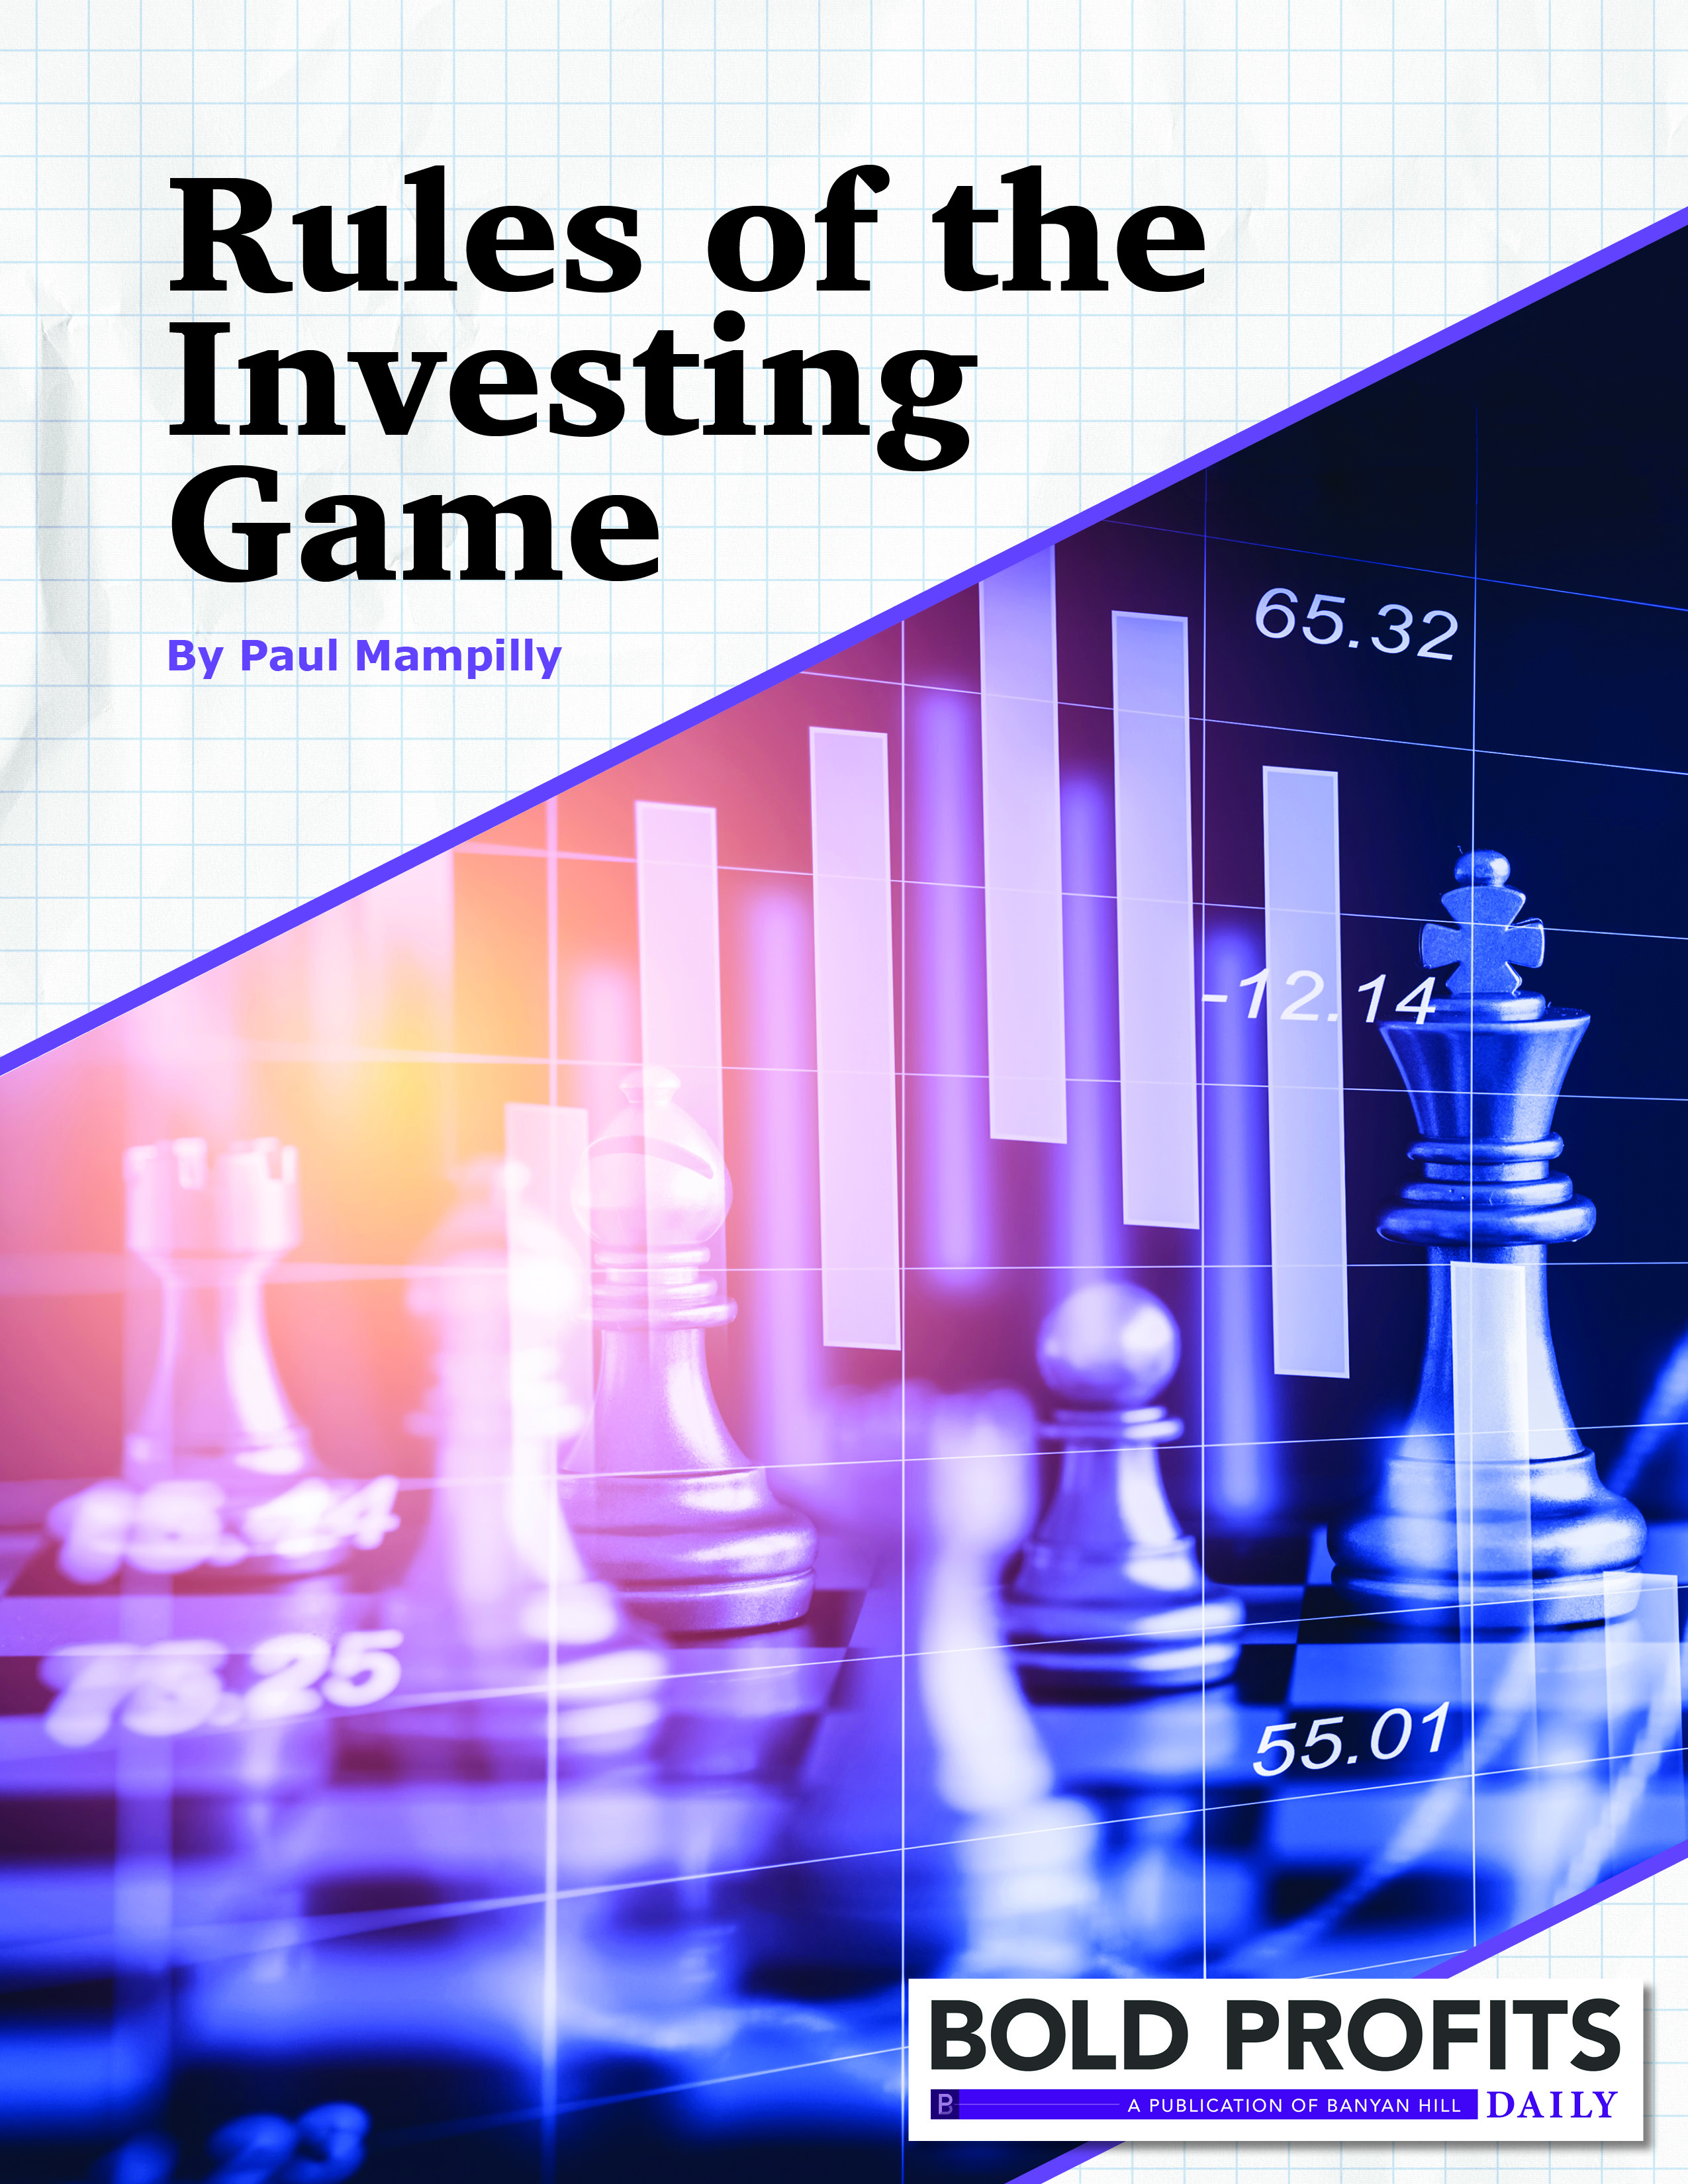 Rules of the Investing Game